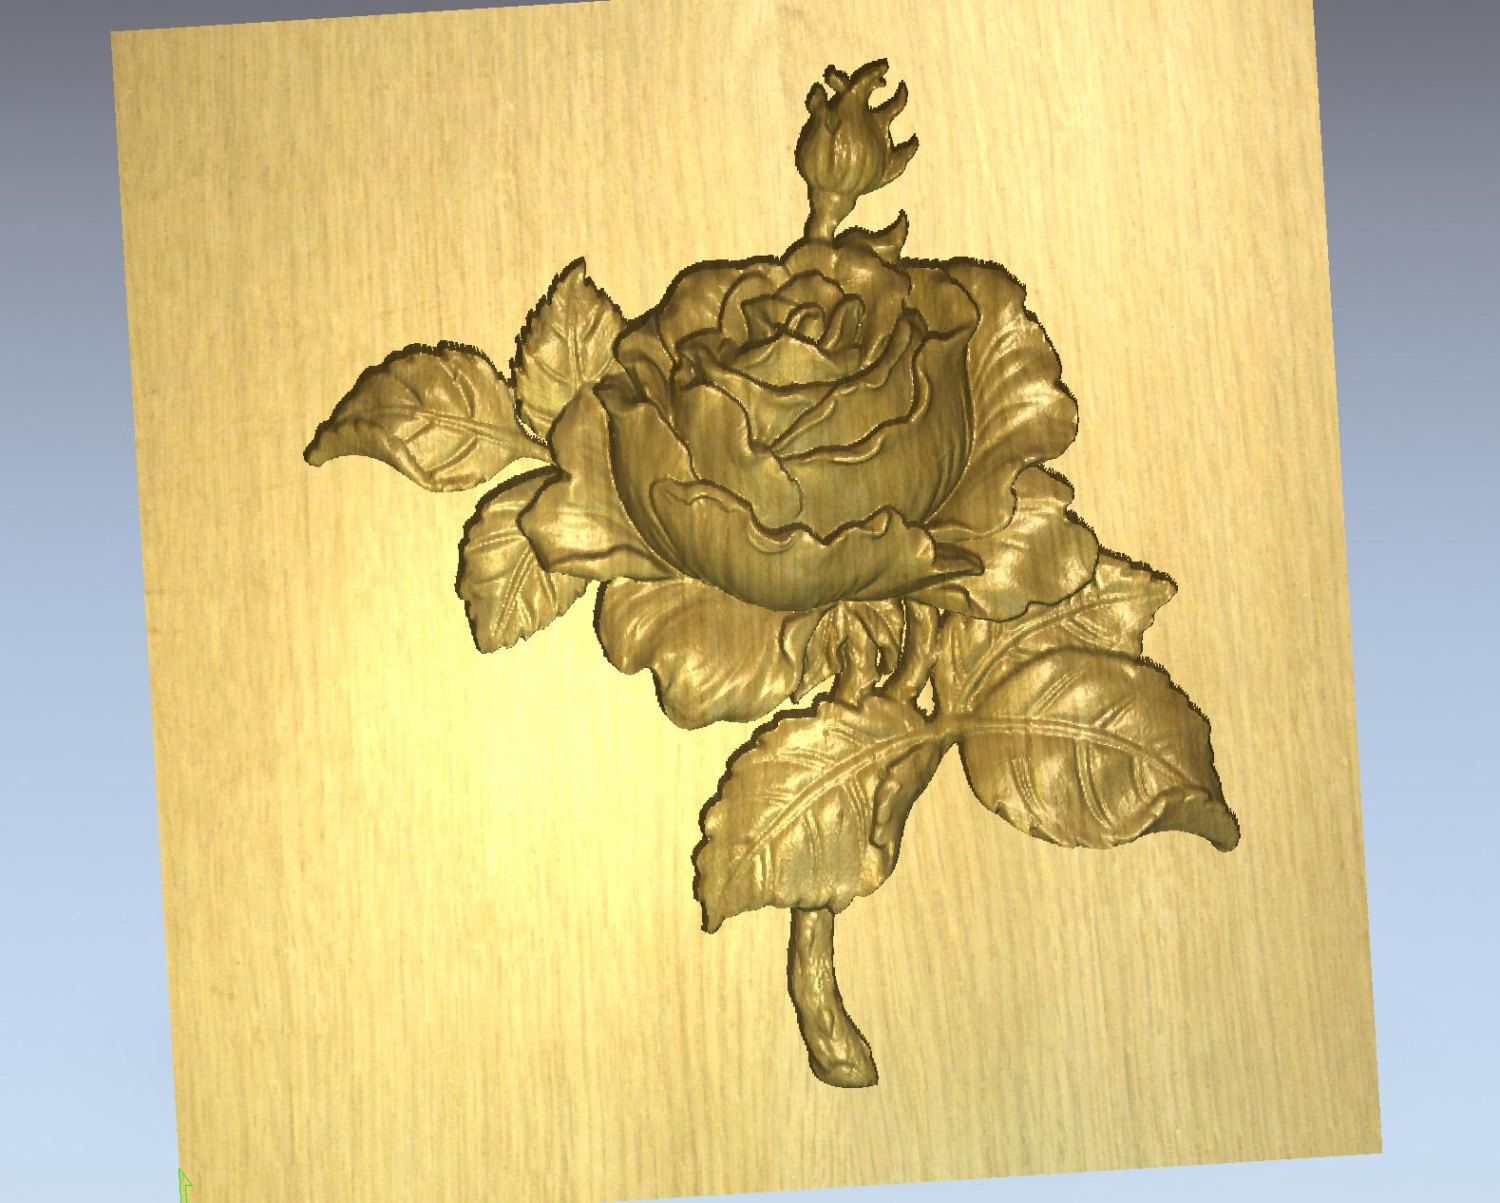 Grayscale 3d relief picture and images - Beautiful Rose 3d Model For Cnc Route Milling By Temp4cnc On Etsy